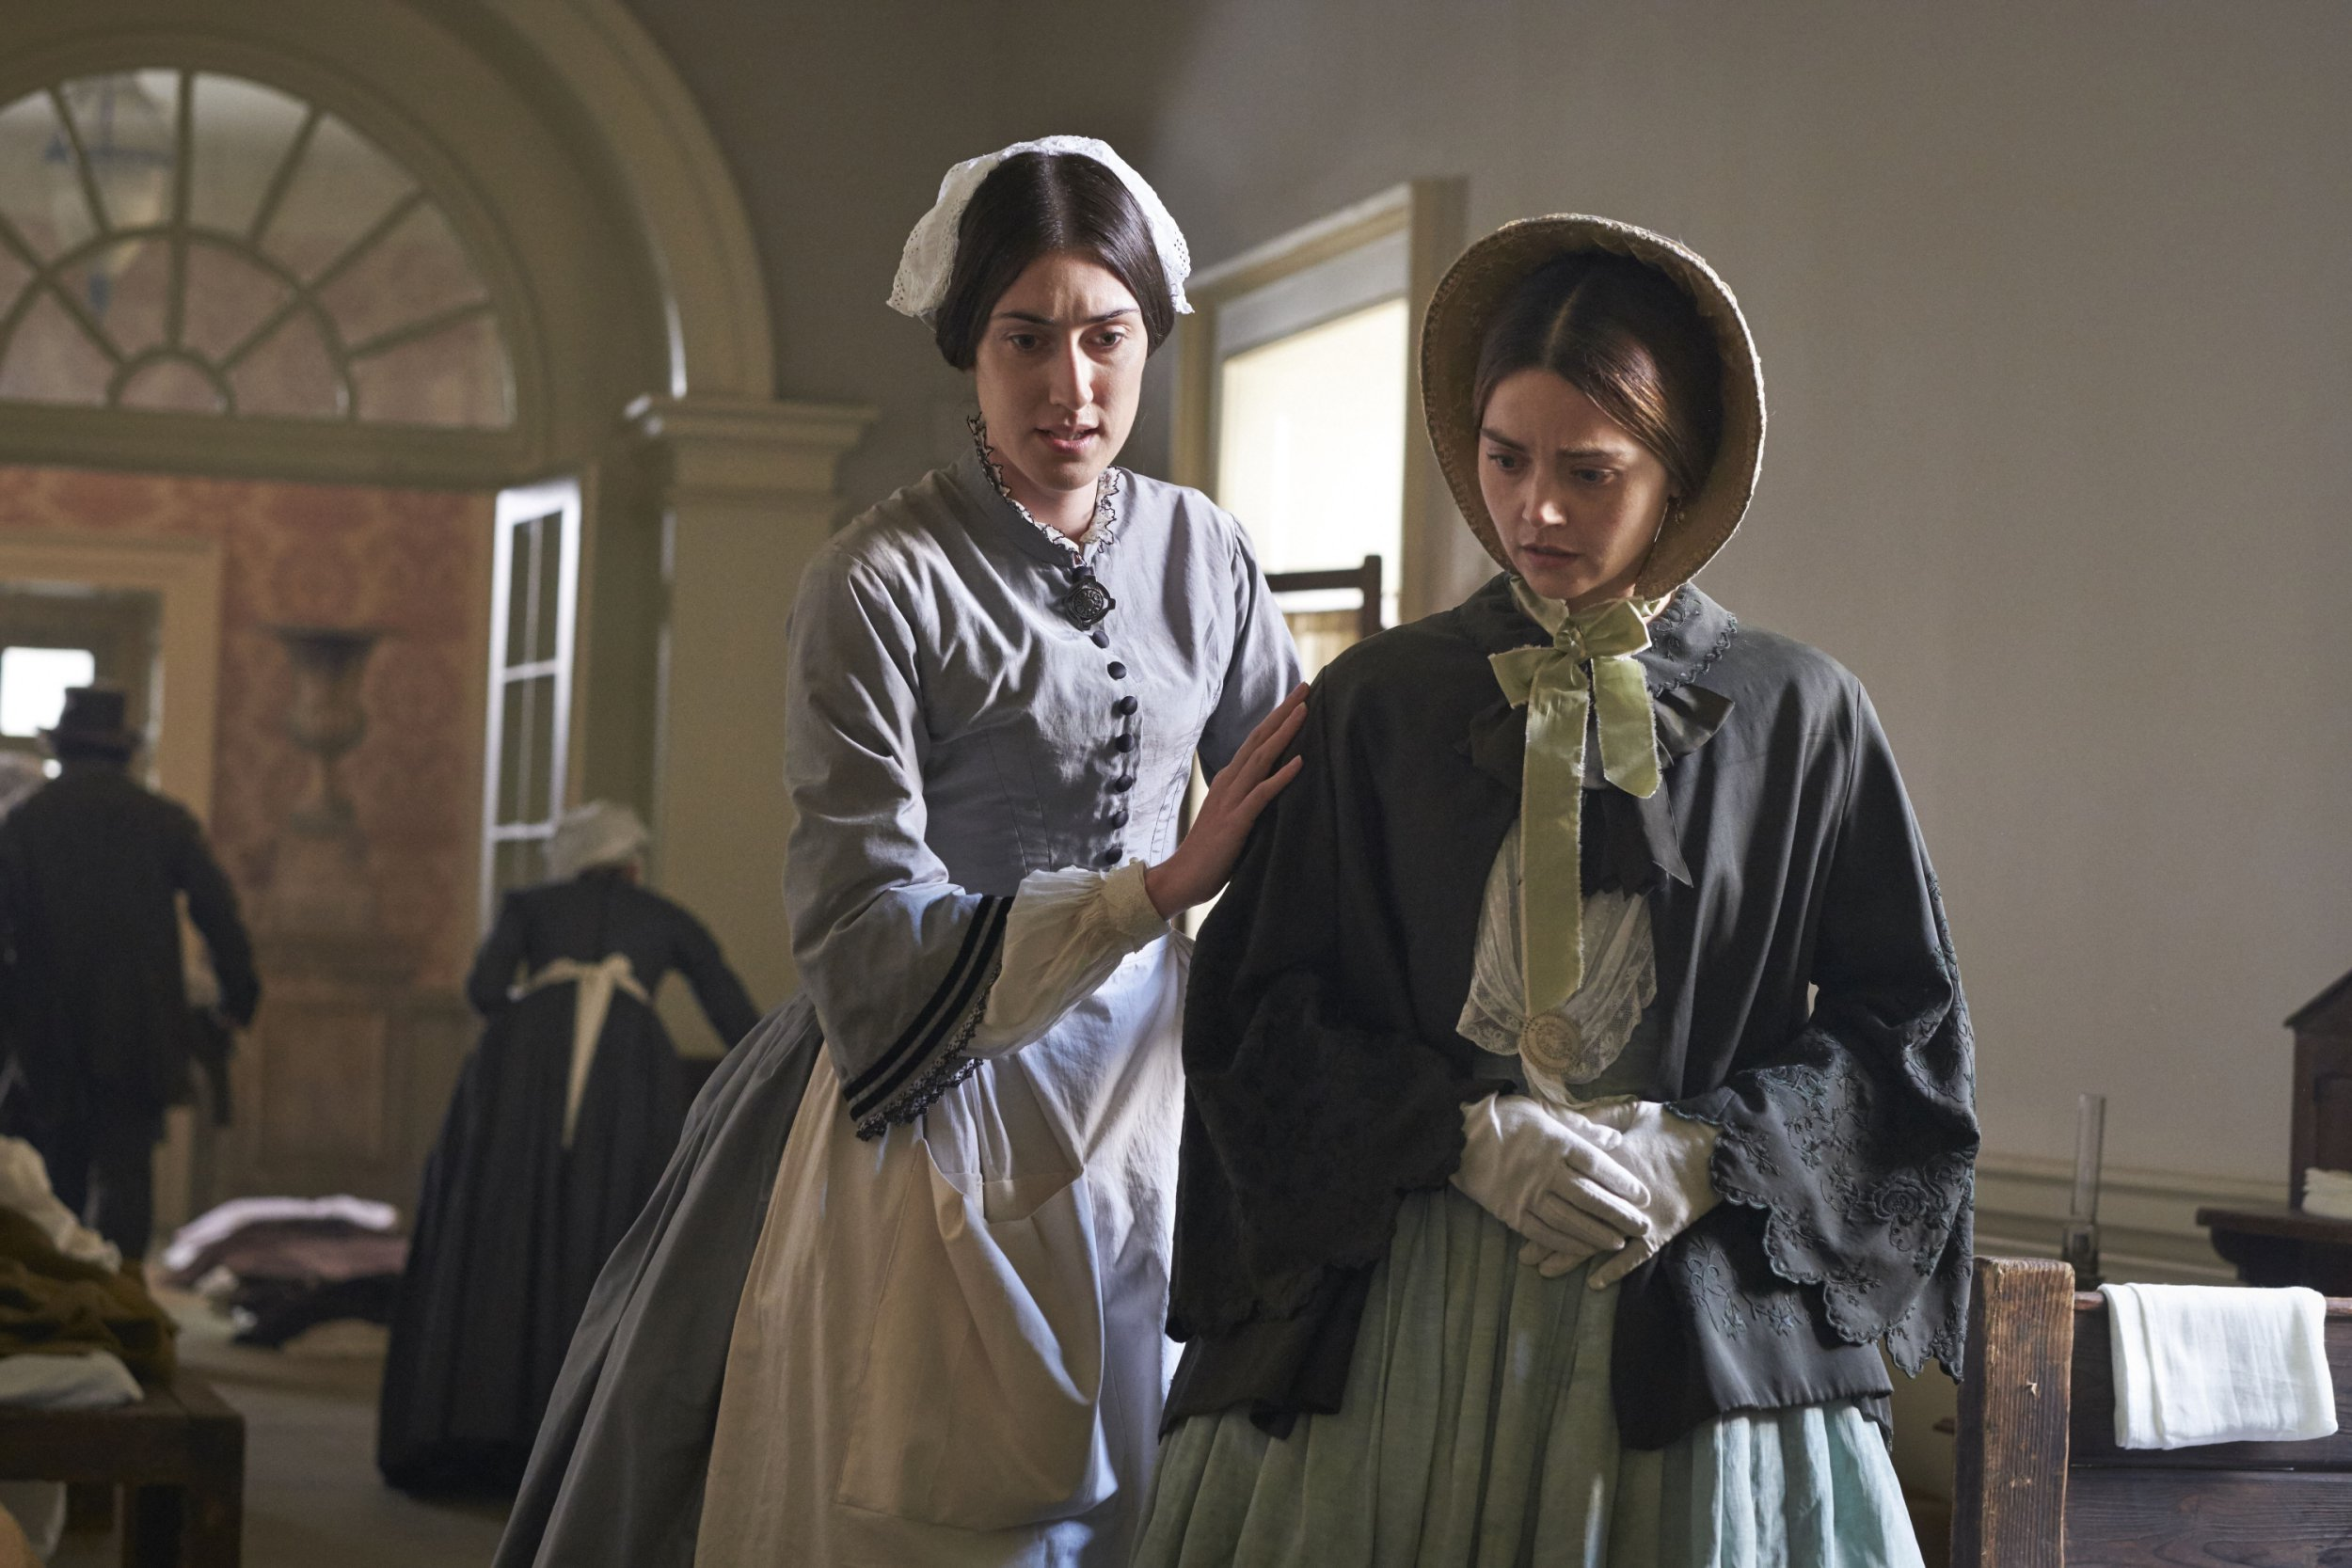 Victoria series 3 episode 4 review: A surprise guest and a shock death that made total sense